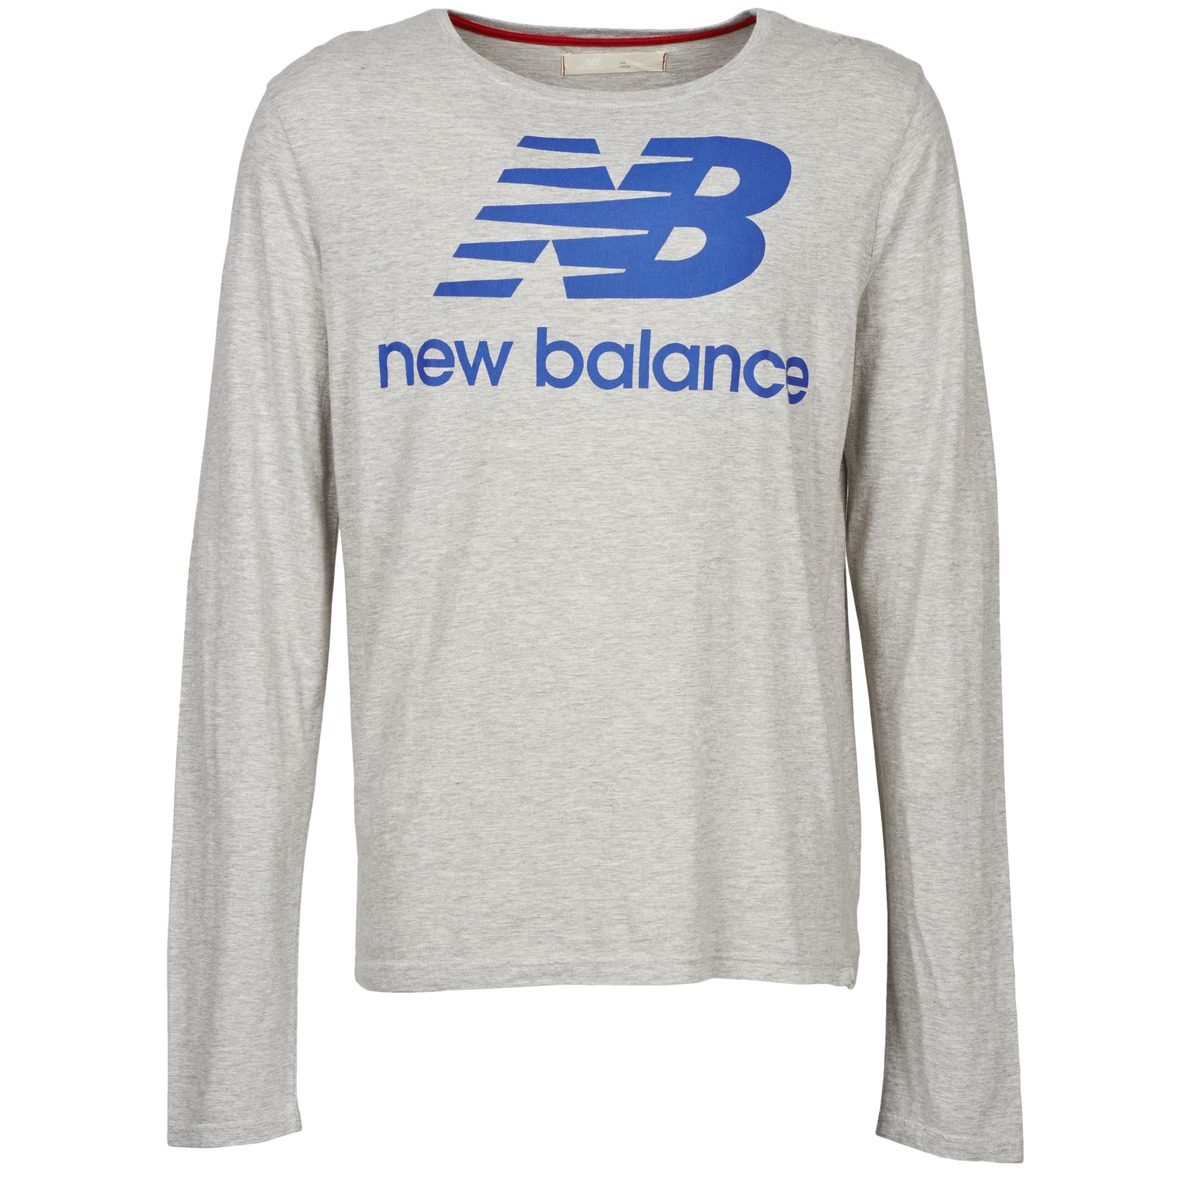 New Balance NBSS1403 LONG SLEEVE TEE Grey